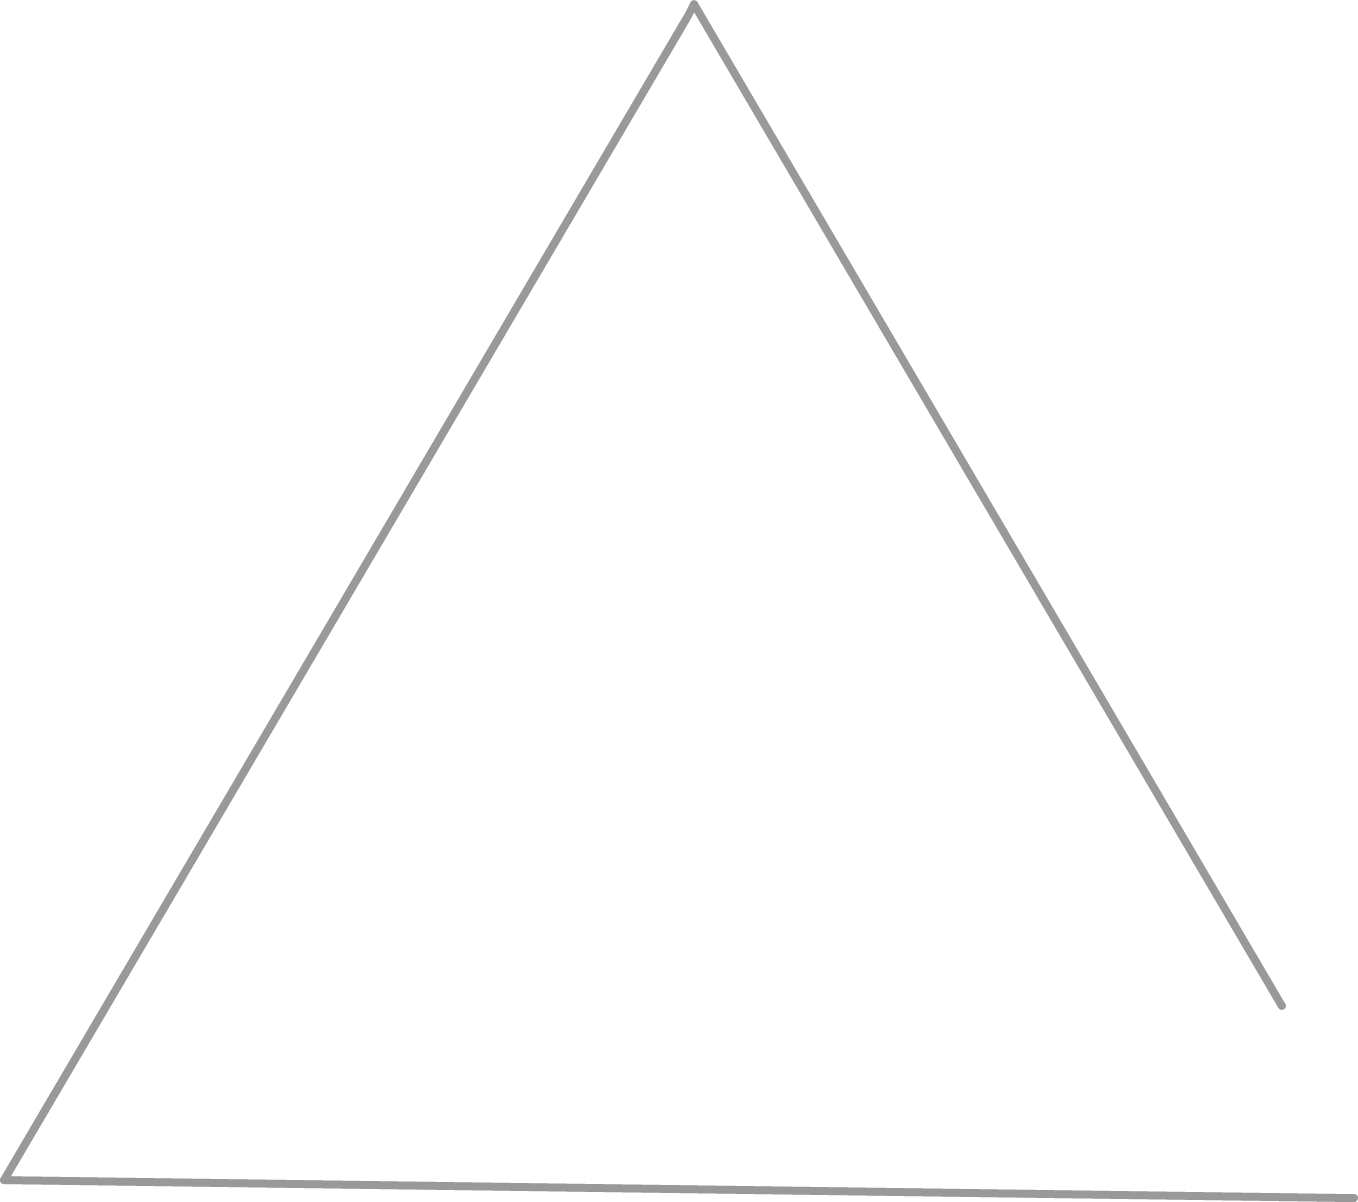 White triangle png. Free download mart